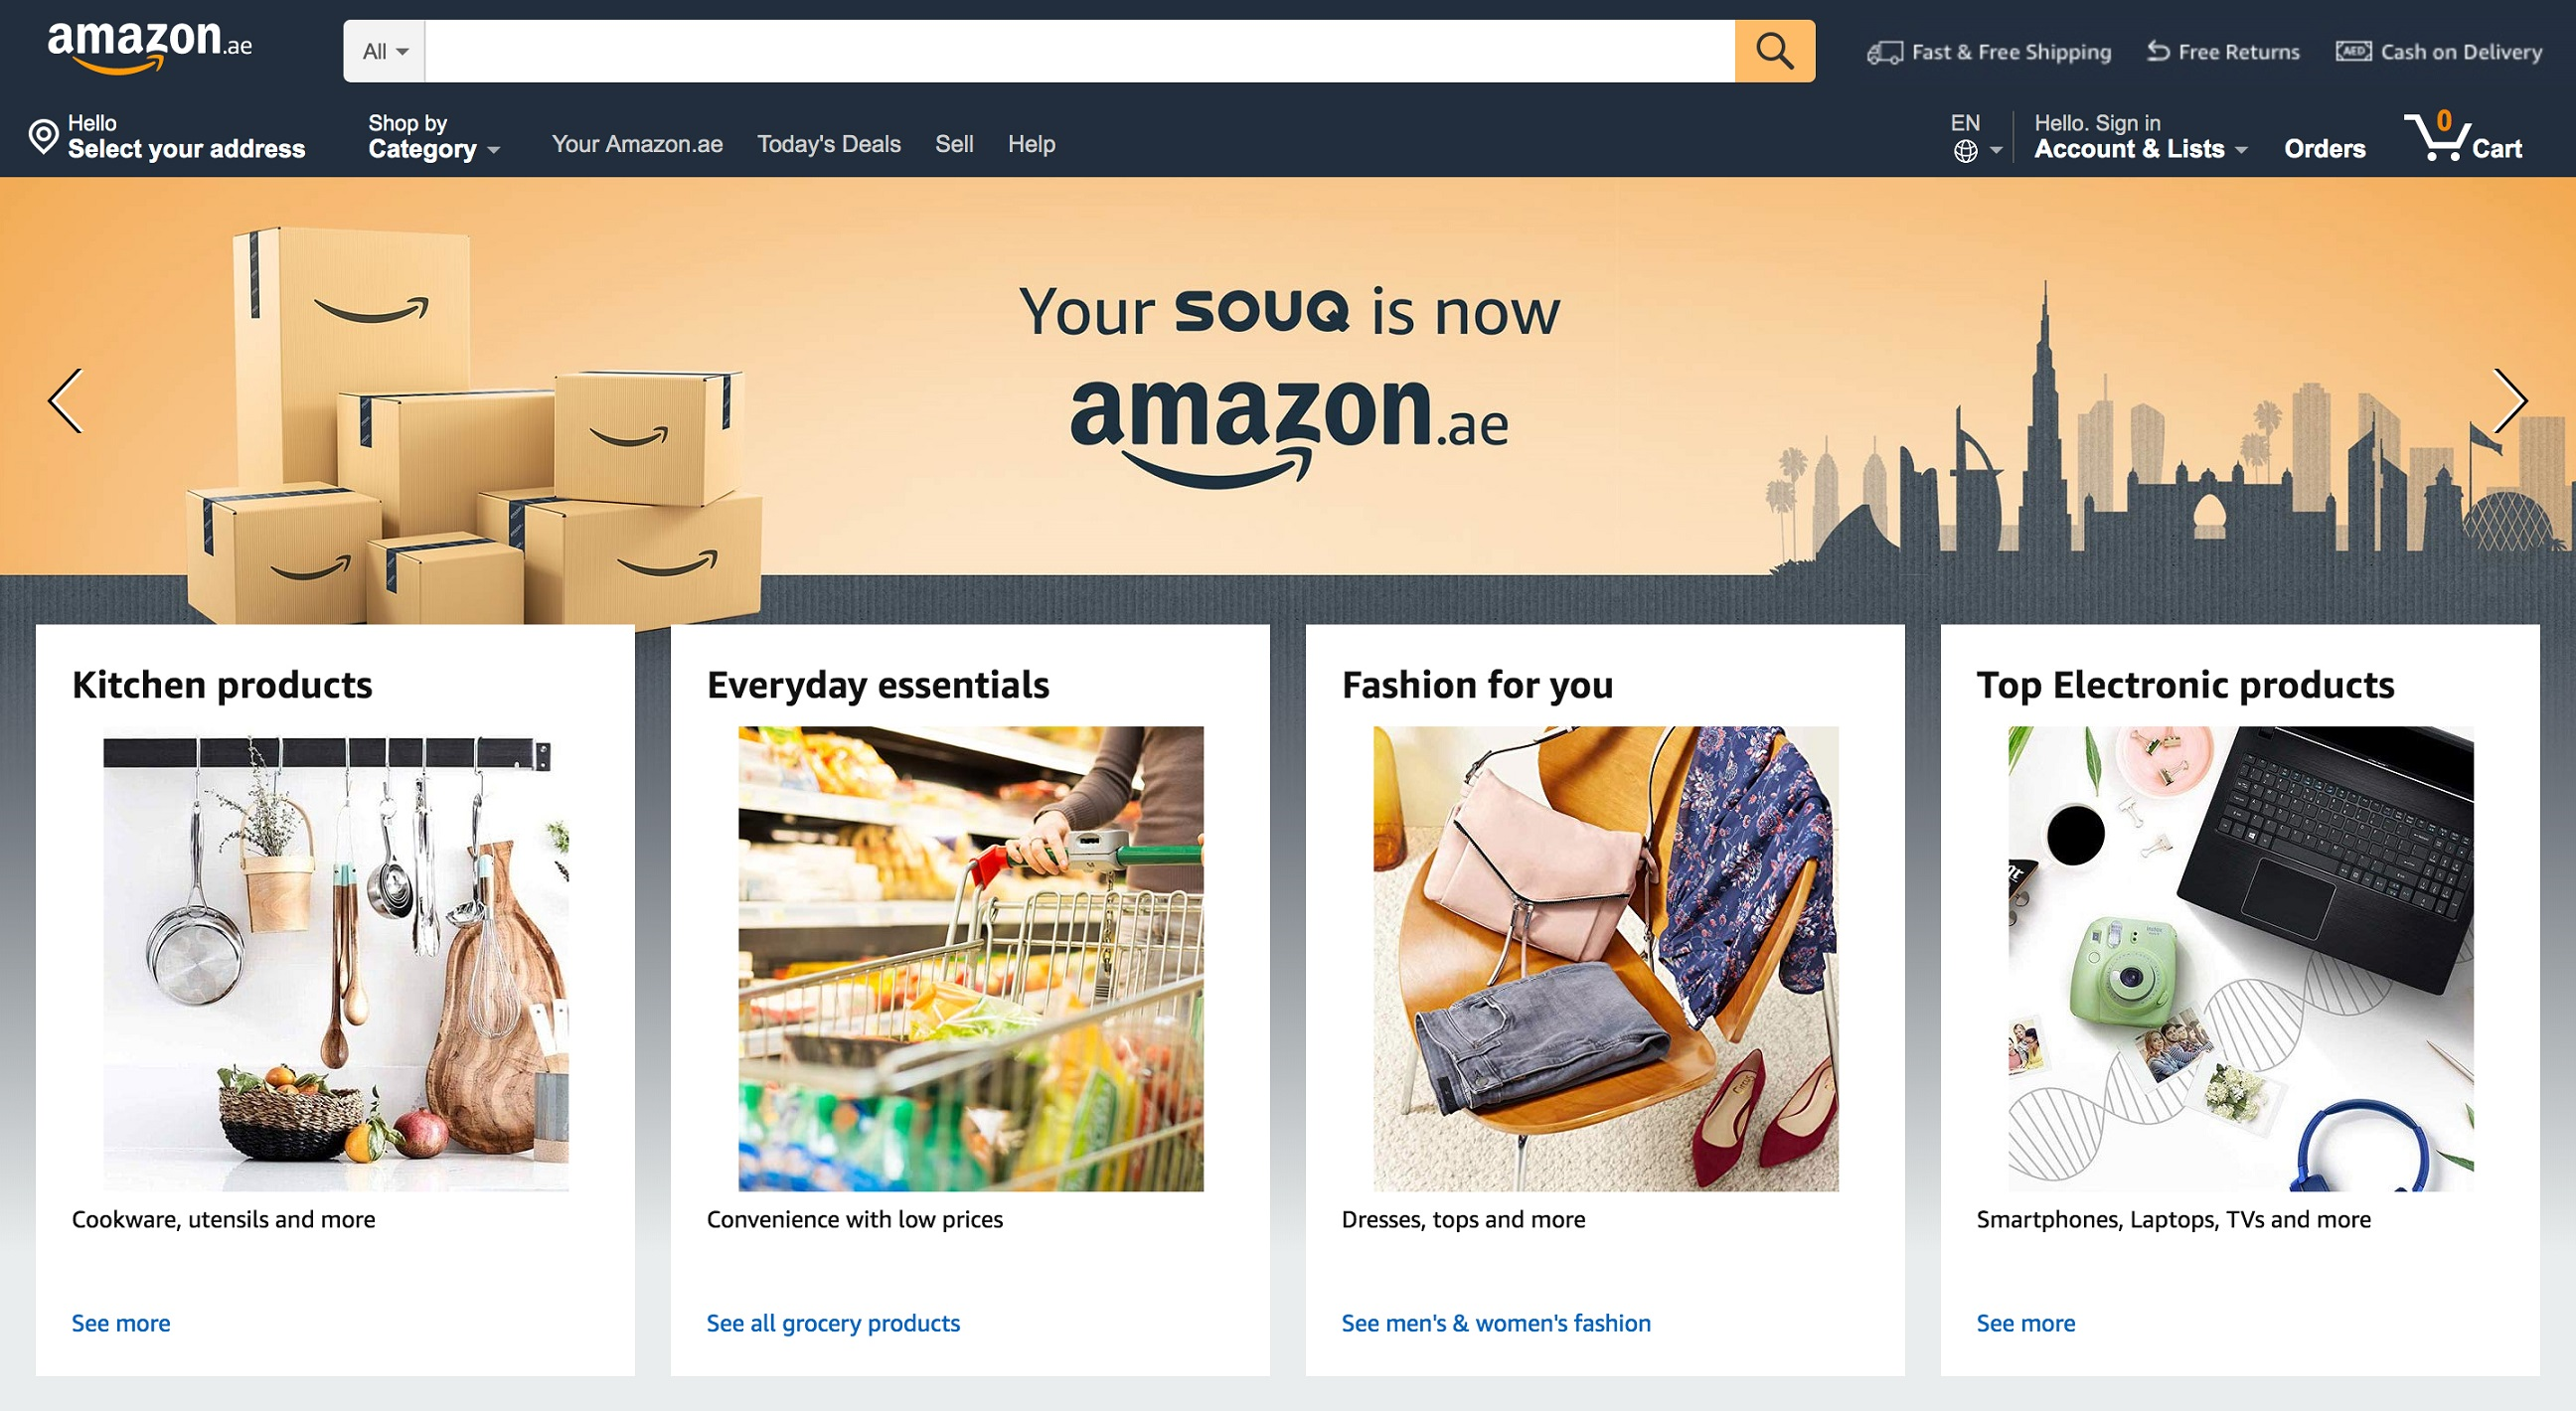 Souq becomes Amazon.ae in UAE